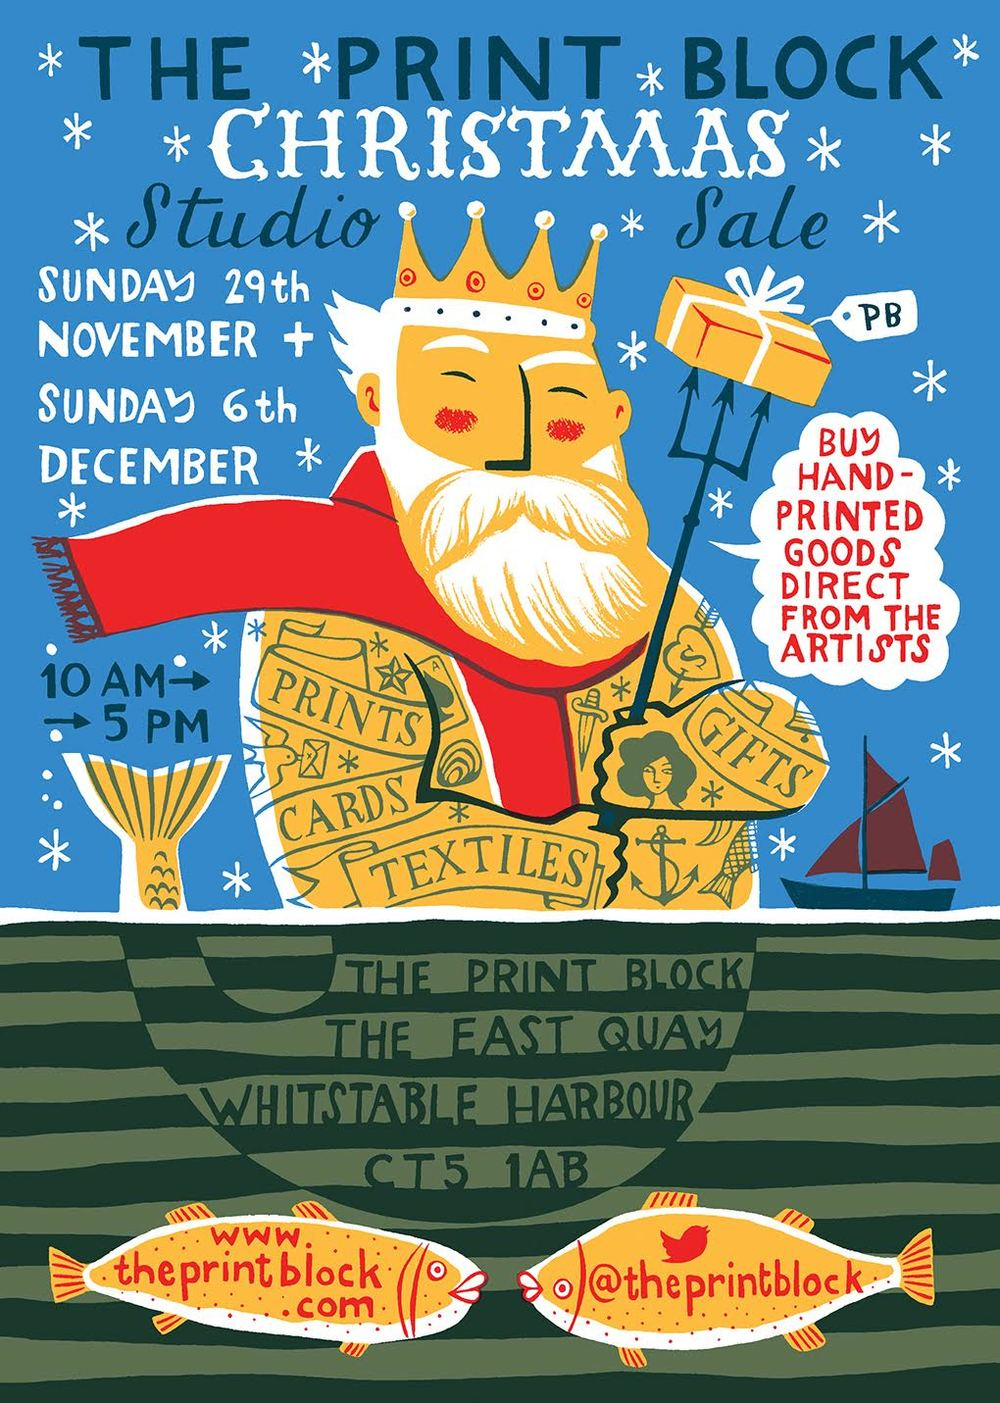 The Print Block studio Sale Christmas 2015